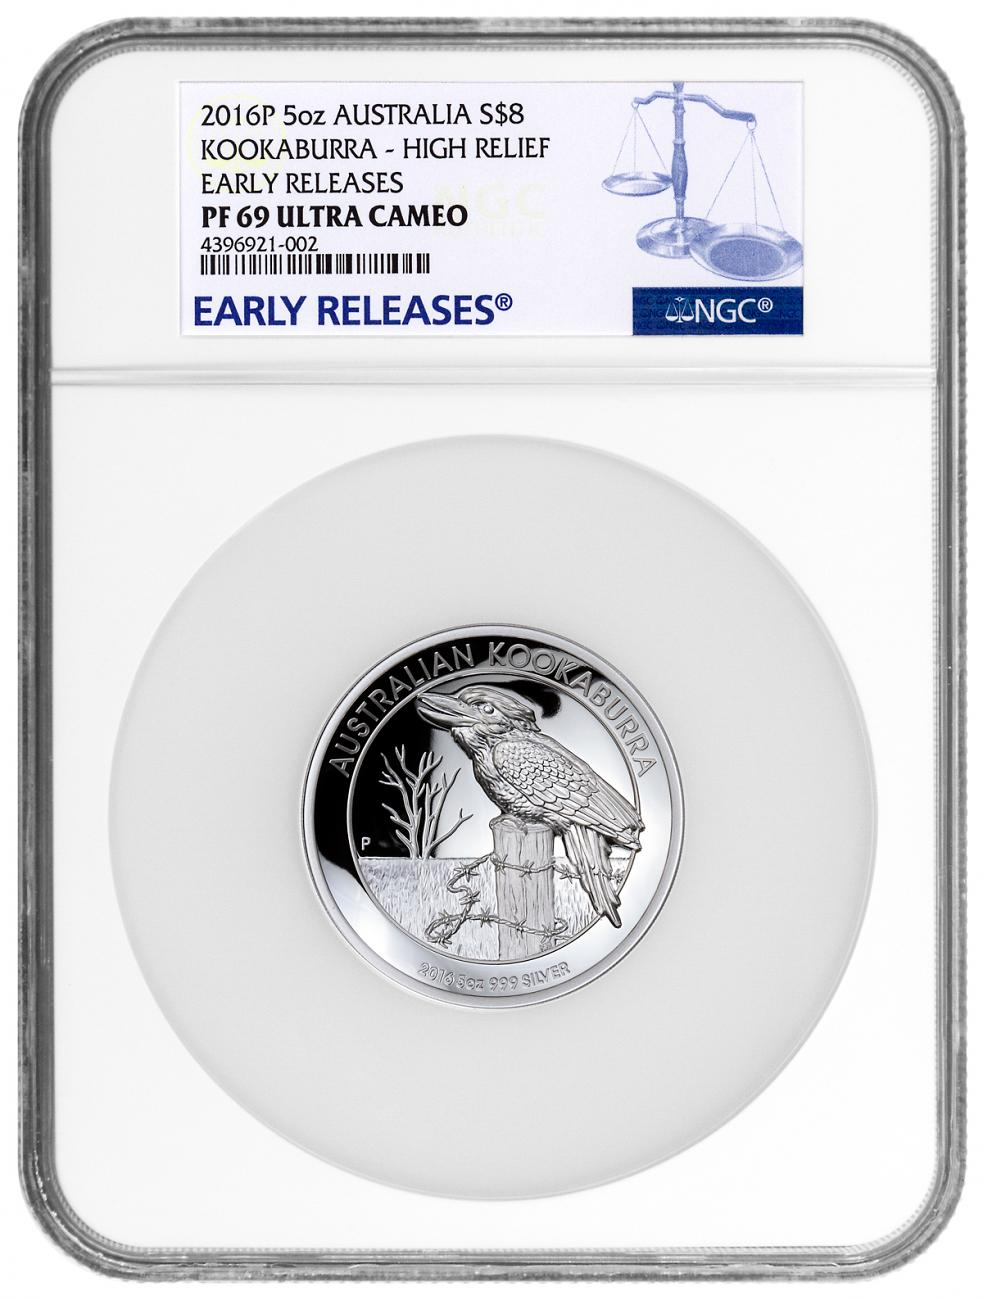 2016-P Australia 5 oz High Relief Silver Kookaburra Proof $8 NGC PF69 UC ER